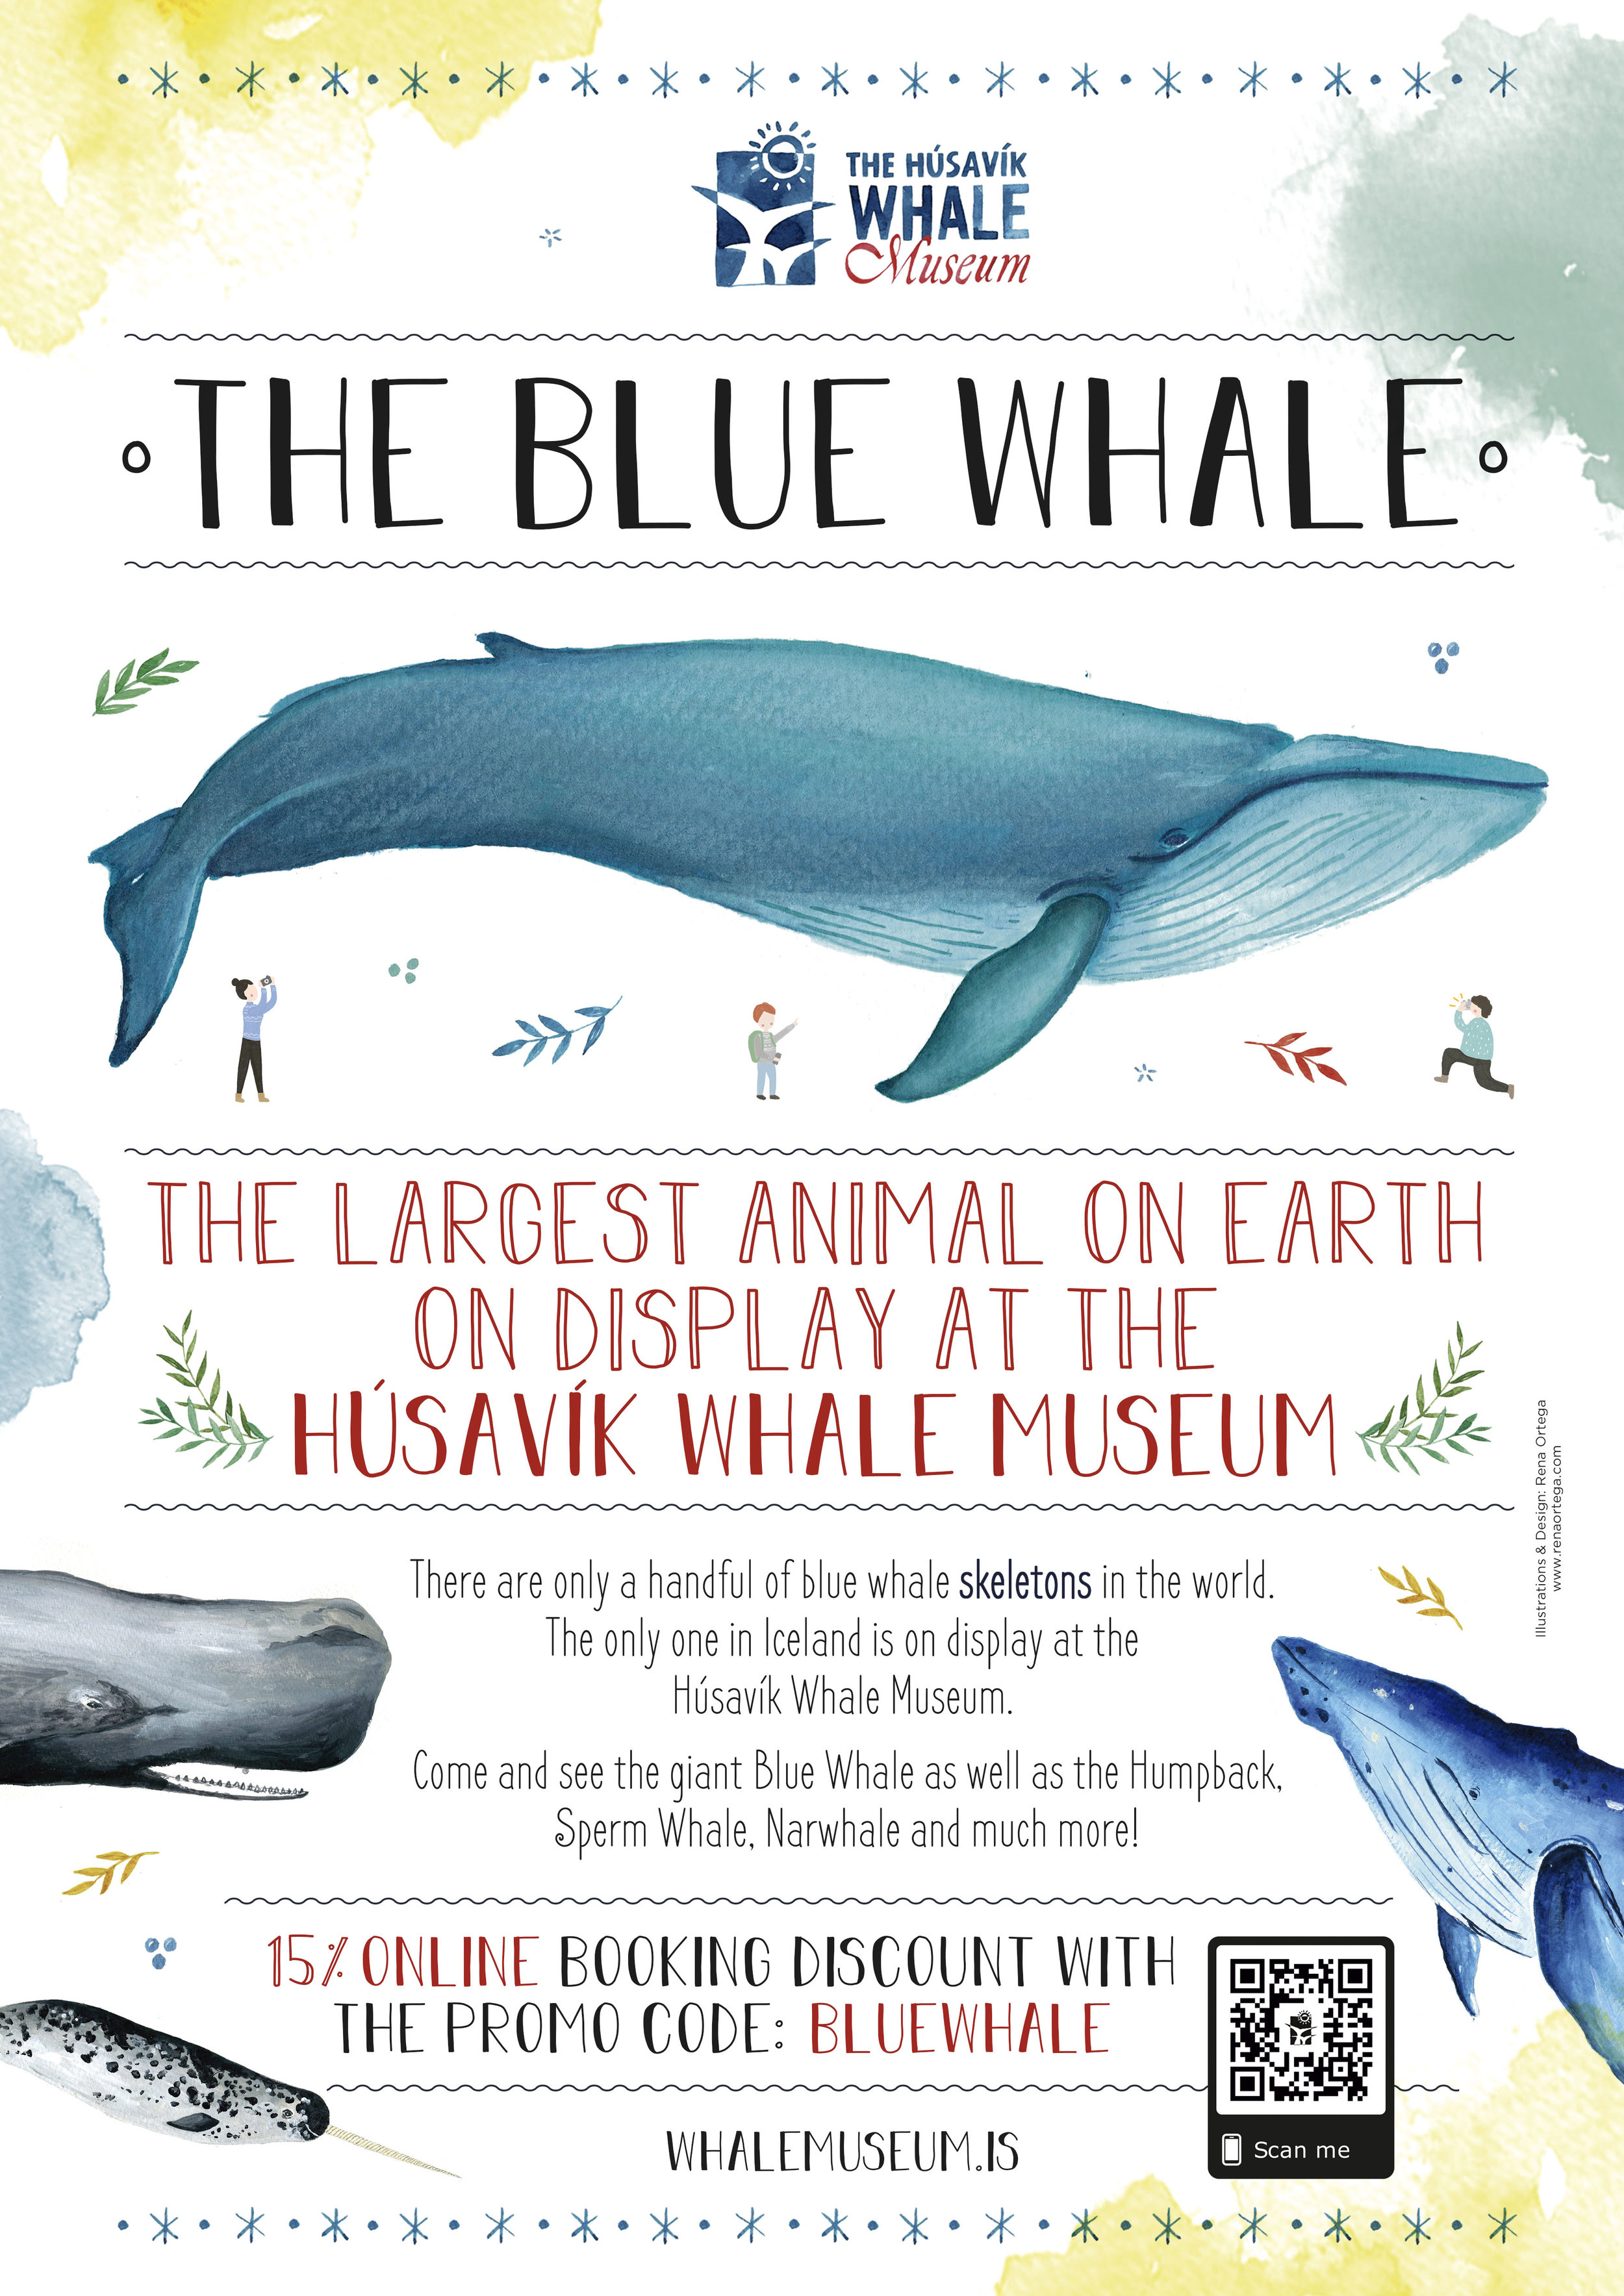 bluewhale_poster copia.jpg